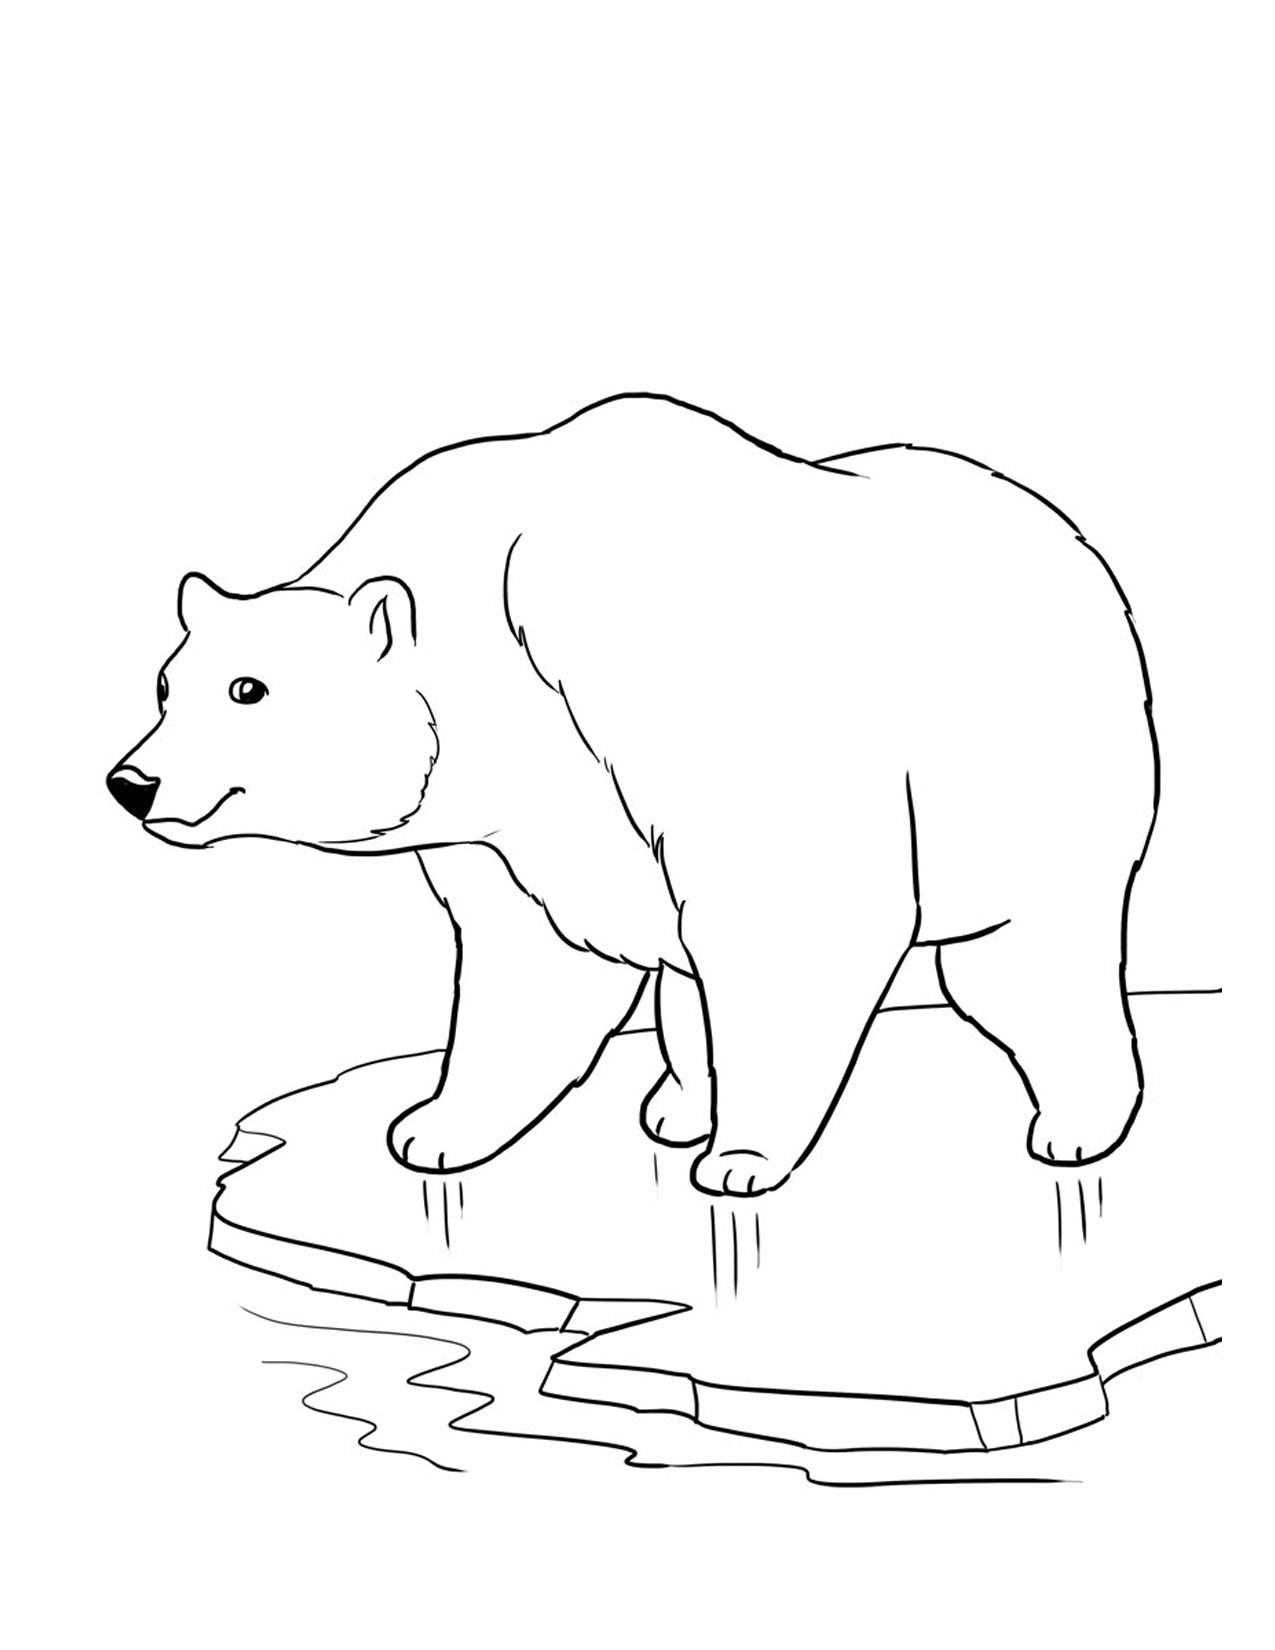 free coloring pages bears free printable bear coloring pages for kids pages coloring bears free